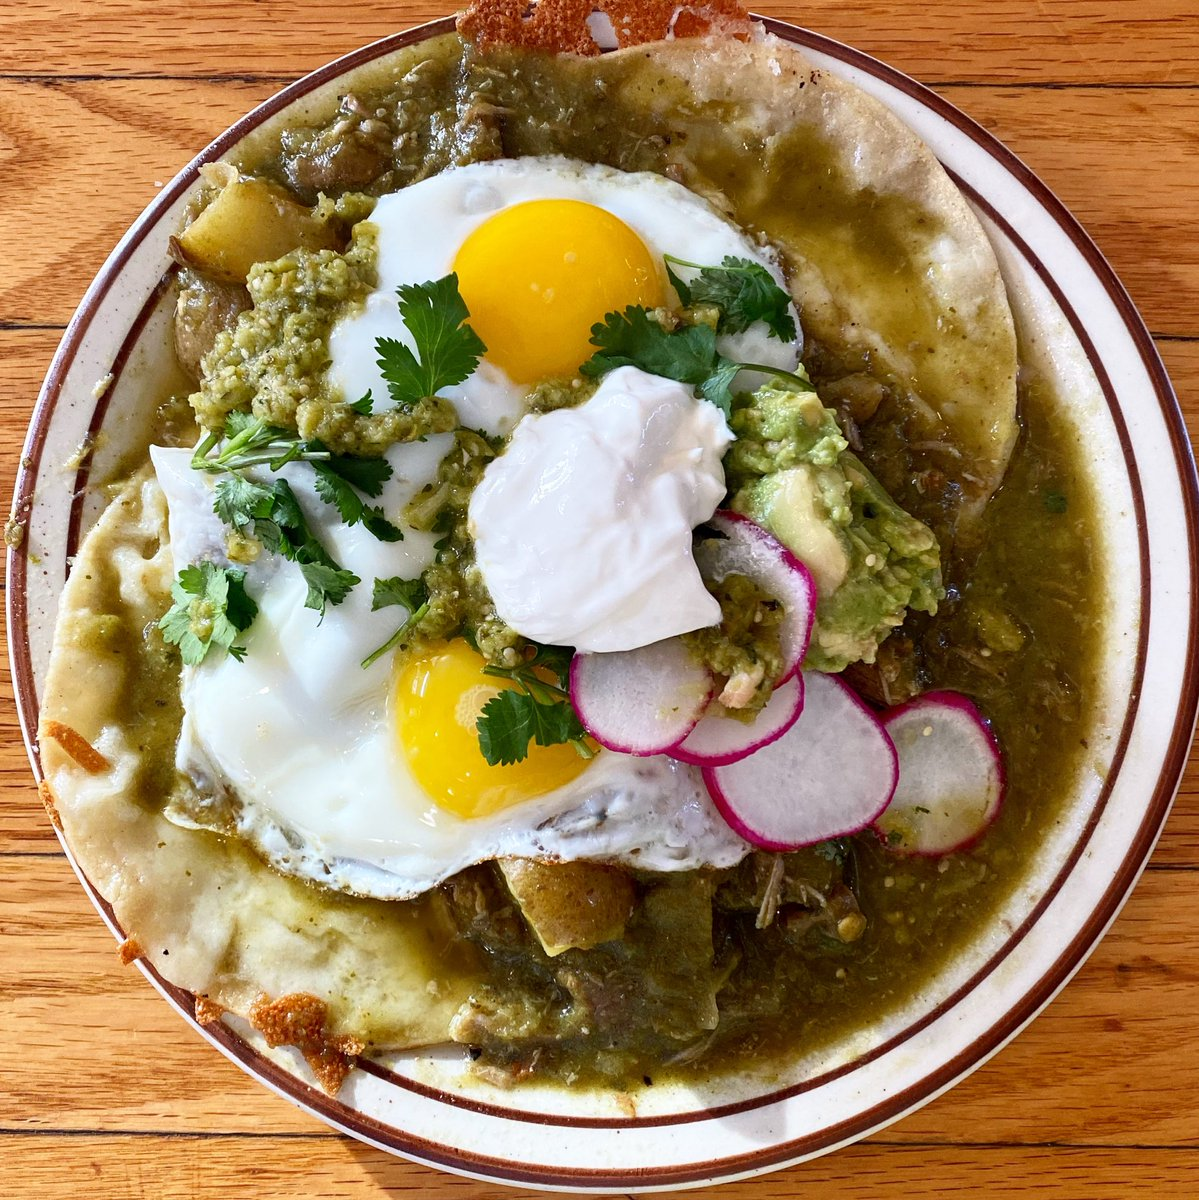 Pork Chile Verde & Eggs on special today. Much cheese, many green!